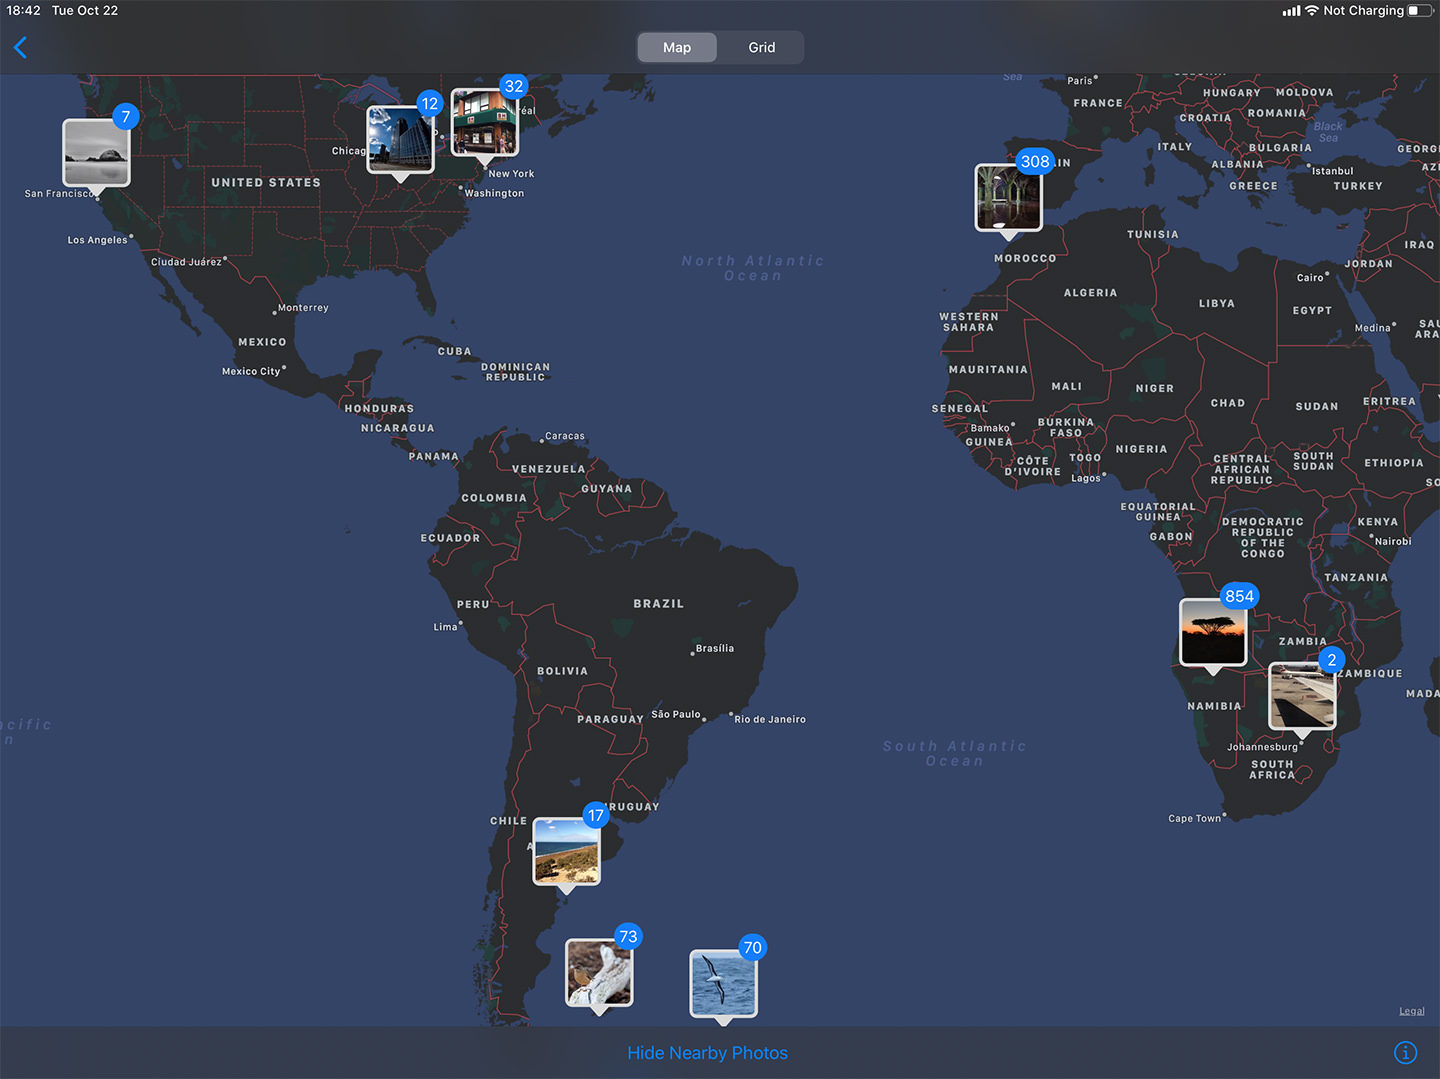 World Map with Geotagged Images